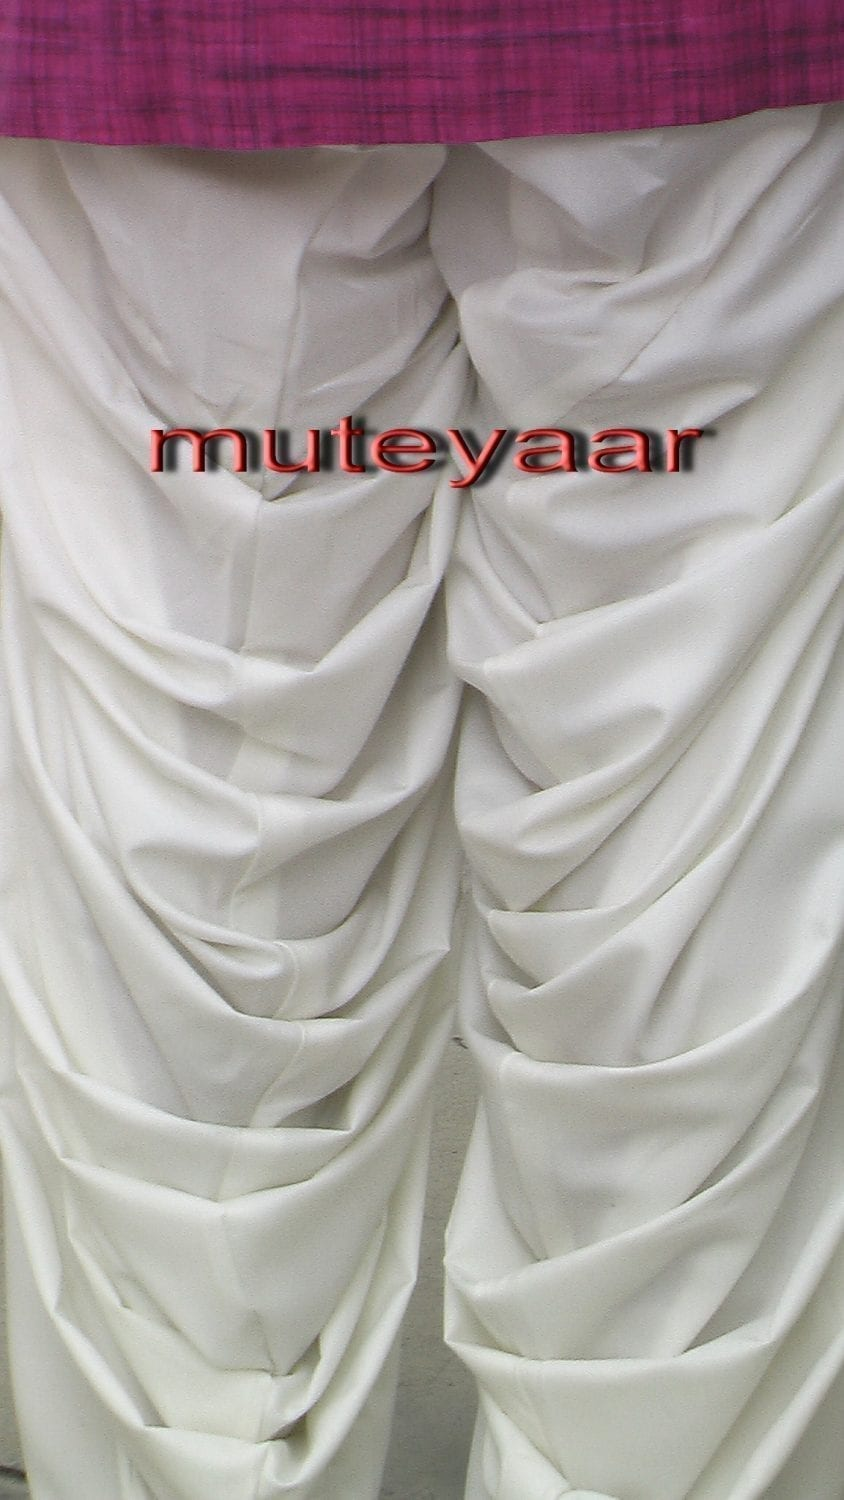 Patiala Salwar Ready to Wear - Buy Online from Patiala City !! 8